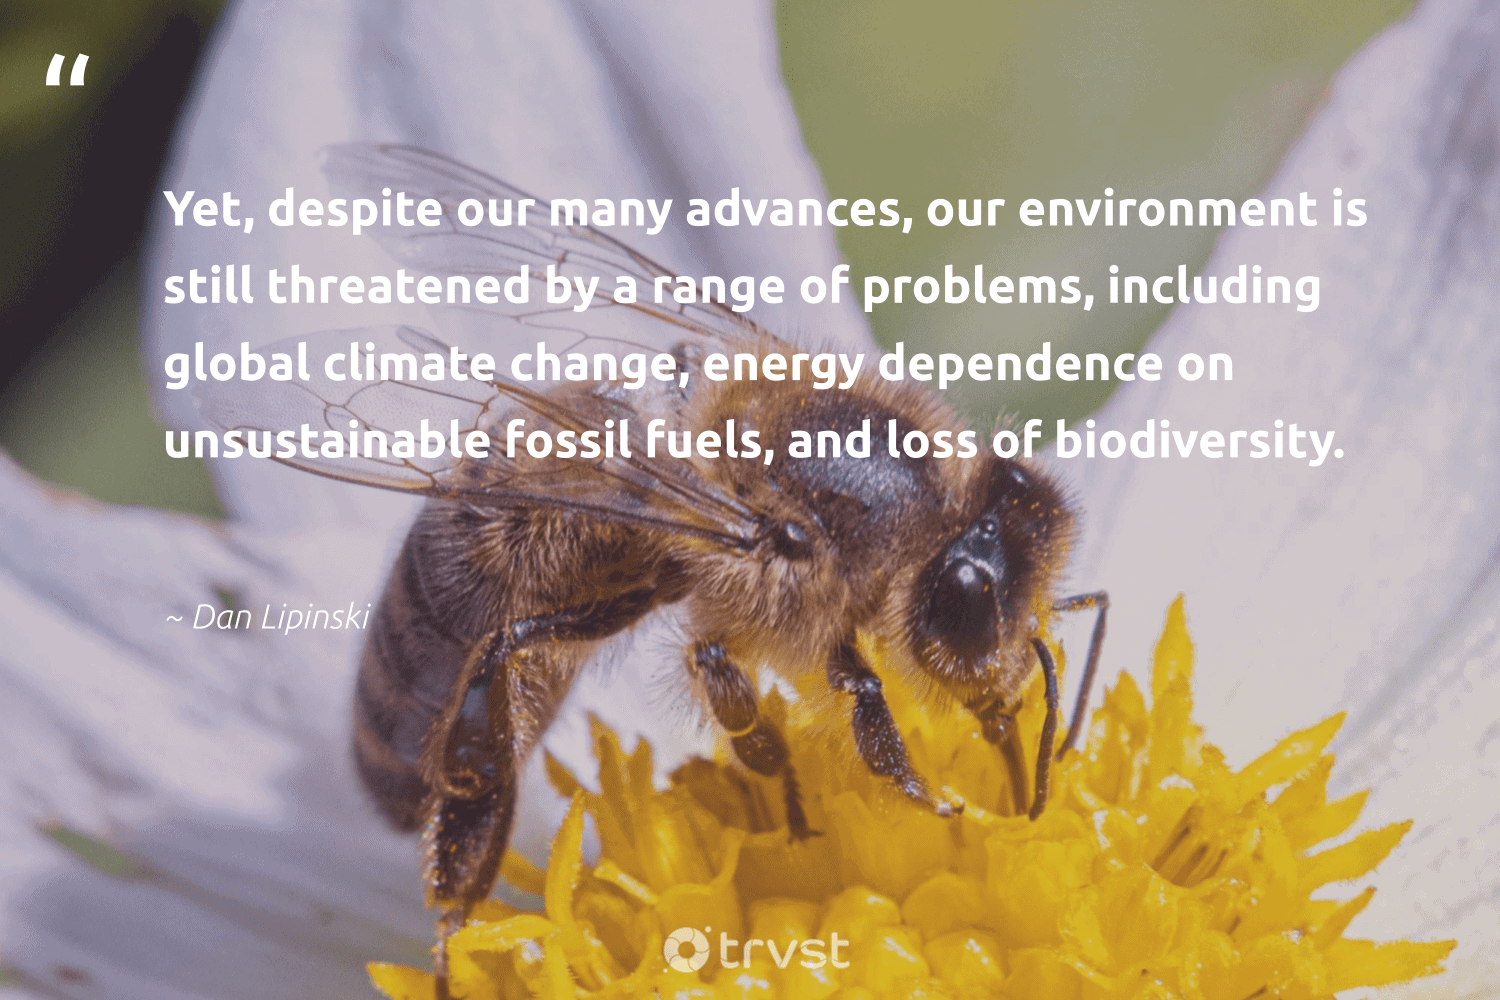 """""""Yet, despite our many advances, our environment is still threatened by a range of problems, including global climate change, energy dependence on unsustainable fossil fuels, and loss of biodiversity.""""  - Dan Lipinski #trvst #quotes #biodiversity #environment #climatechange #energy #fossilfuels #fossil #climate #nature #coal #cheetah"""